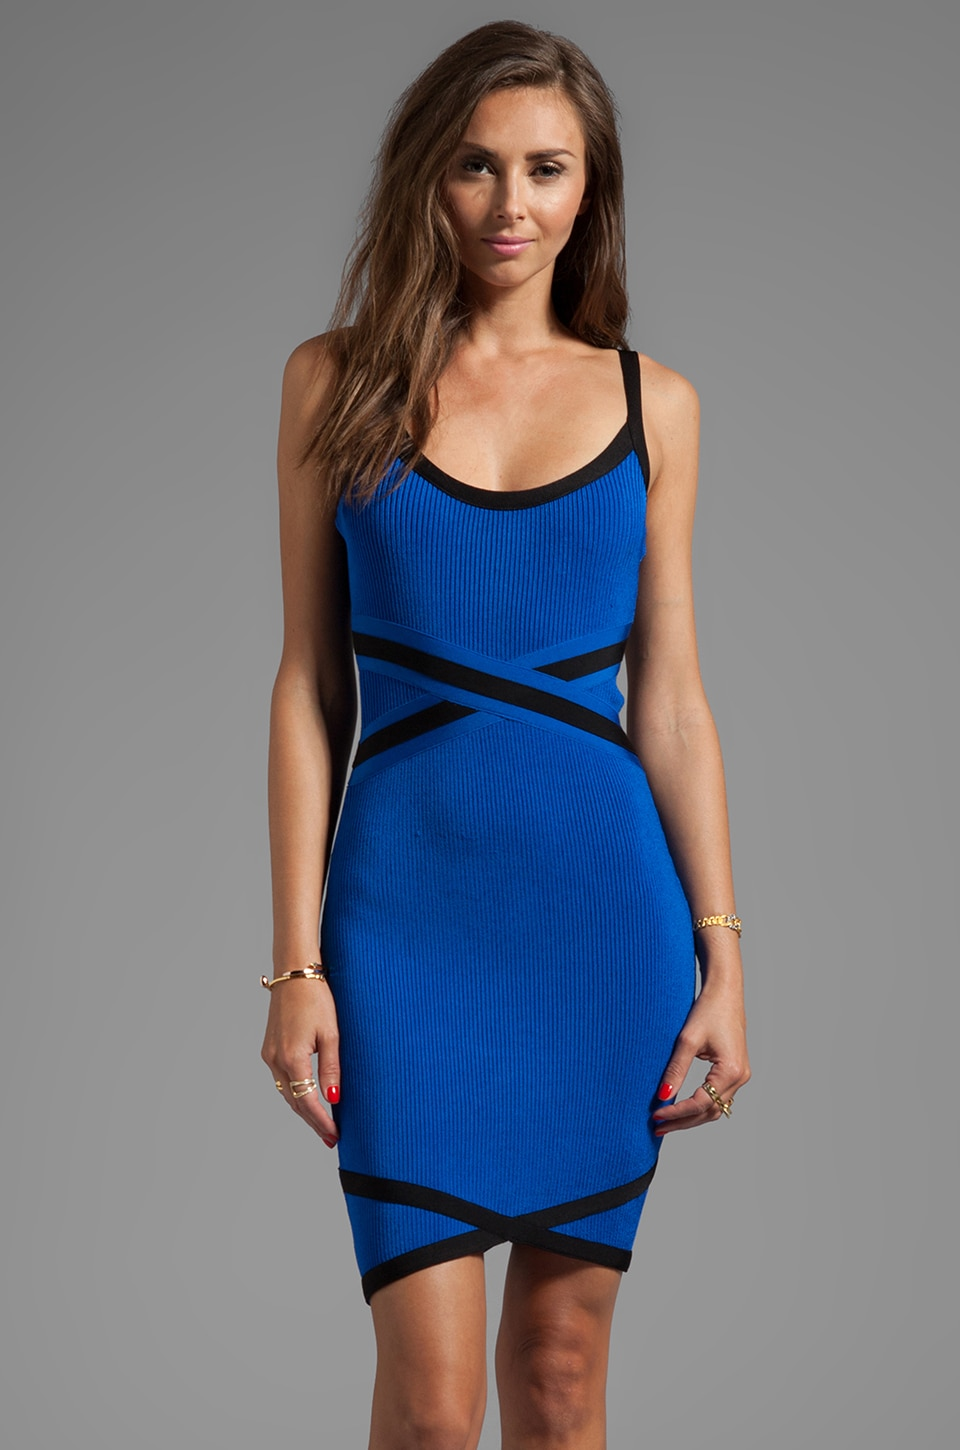 Stretta Adriana Dress in Cobalt/Black